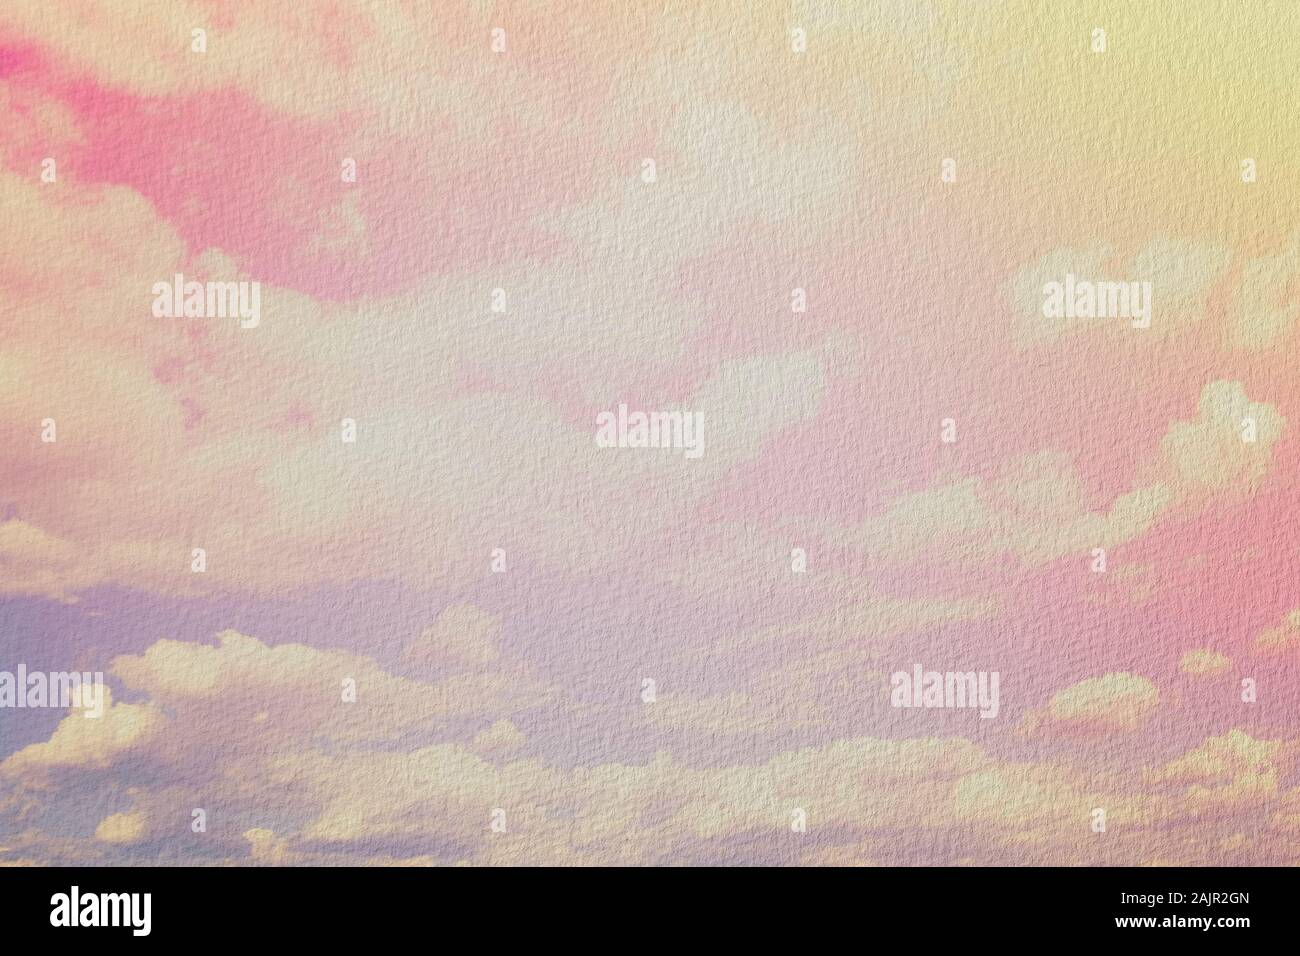 watercolor illustration of sky with cloud artistic natural painting abstract background stock photo 338567733 alamy alamy